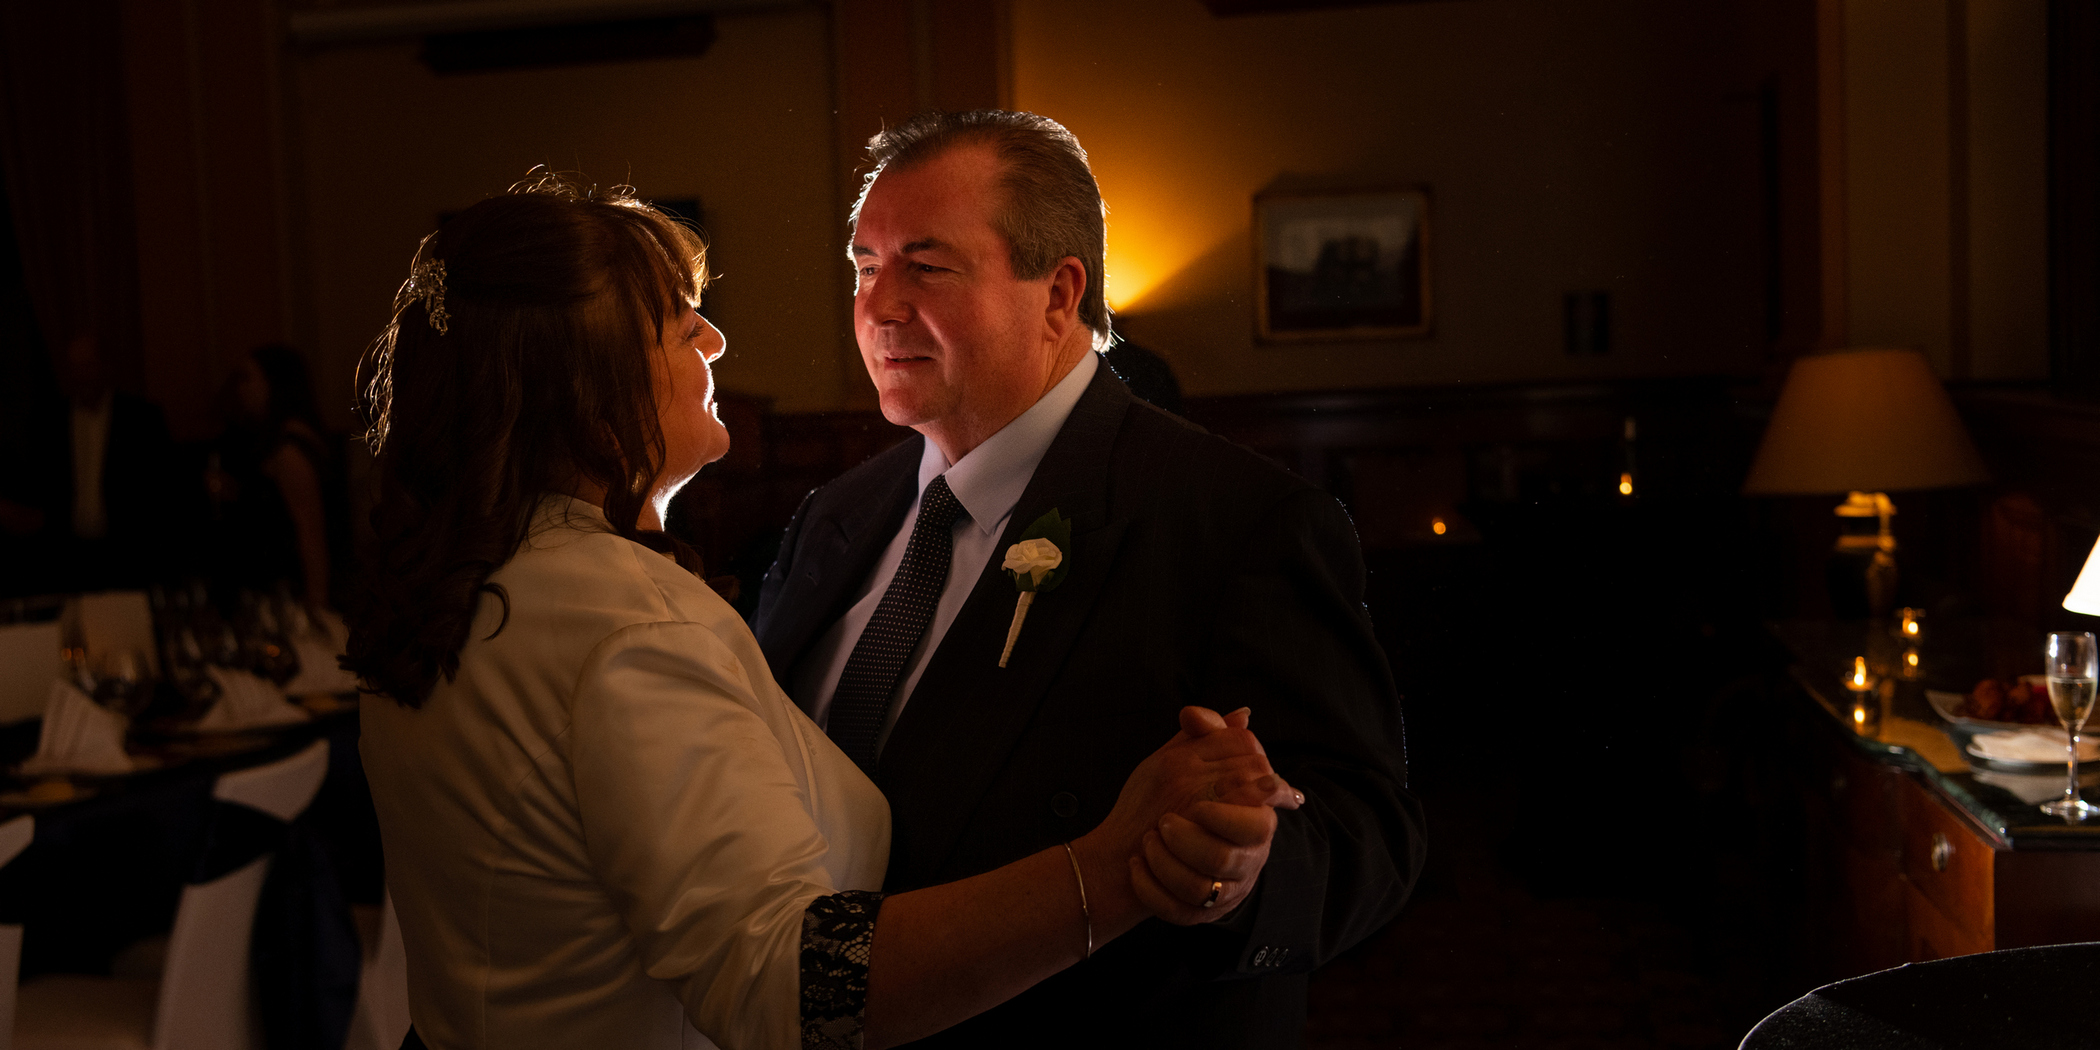 First dance wedding photo at treasury building Brisbane